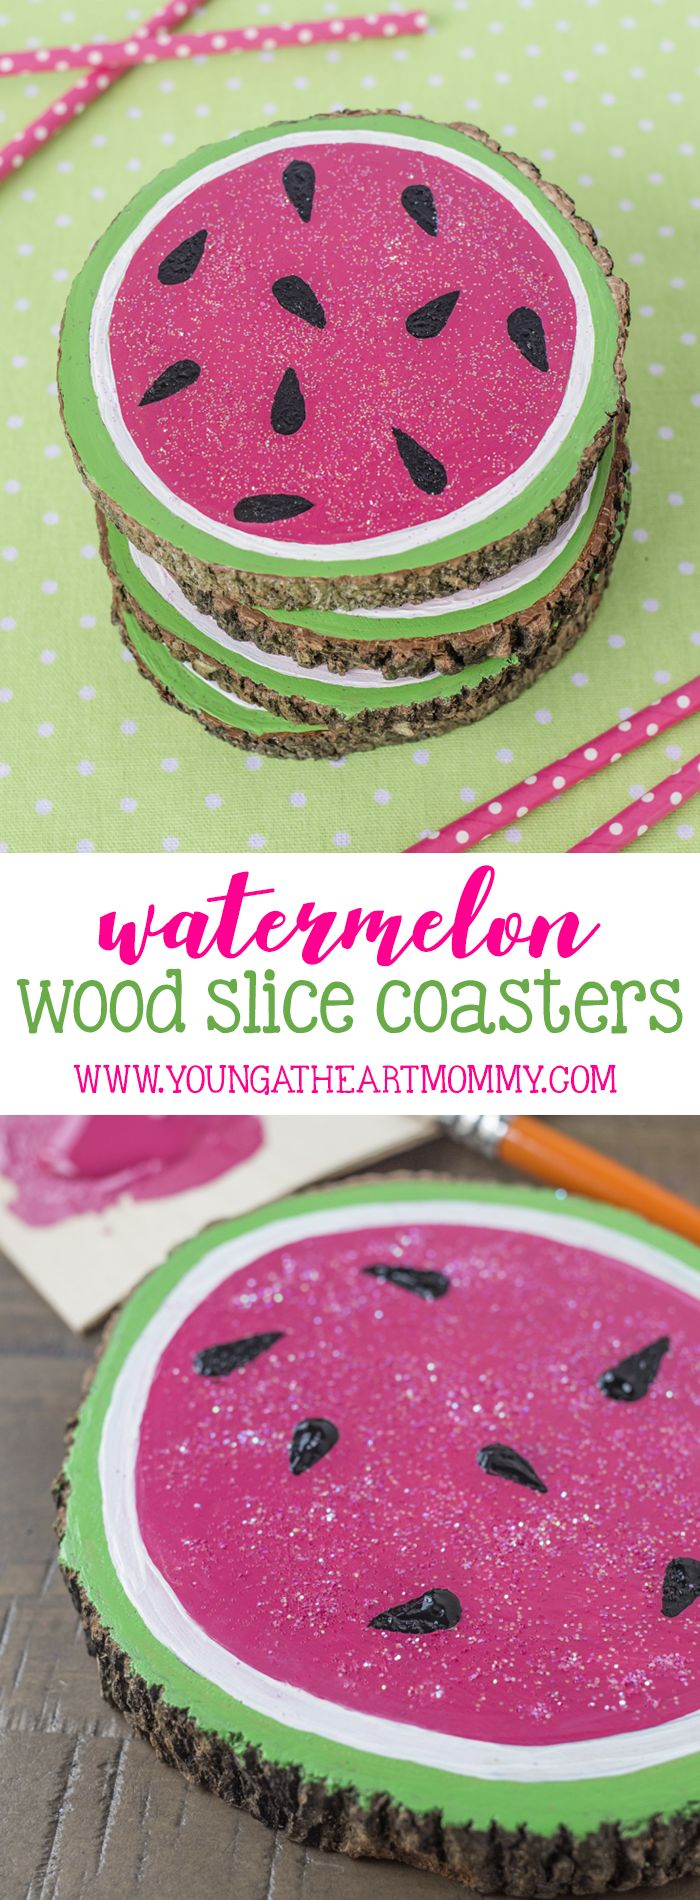 Is there anything cuter than a watermelon coaster to place your cold drink on during a sunny day outside? Sweeten up wood slices with a touch of paint and hint of glitter for the perfect summer table decor. From pineapples and strawberries to watermelons and oranges, the fruit-filled trend has taken over! This year summer …